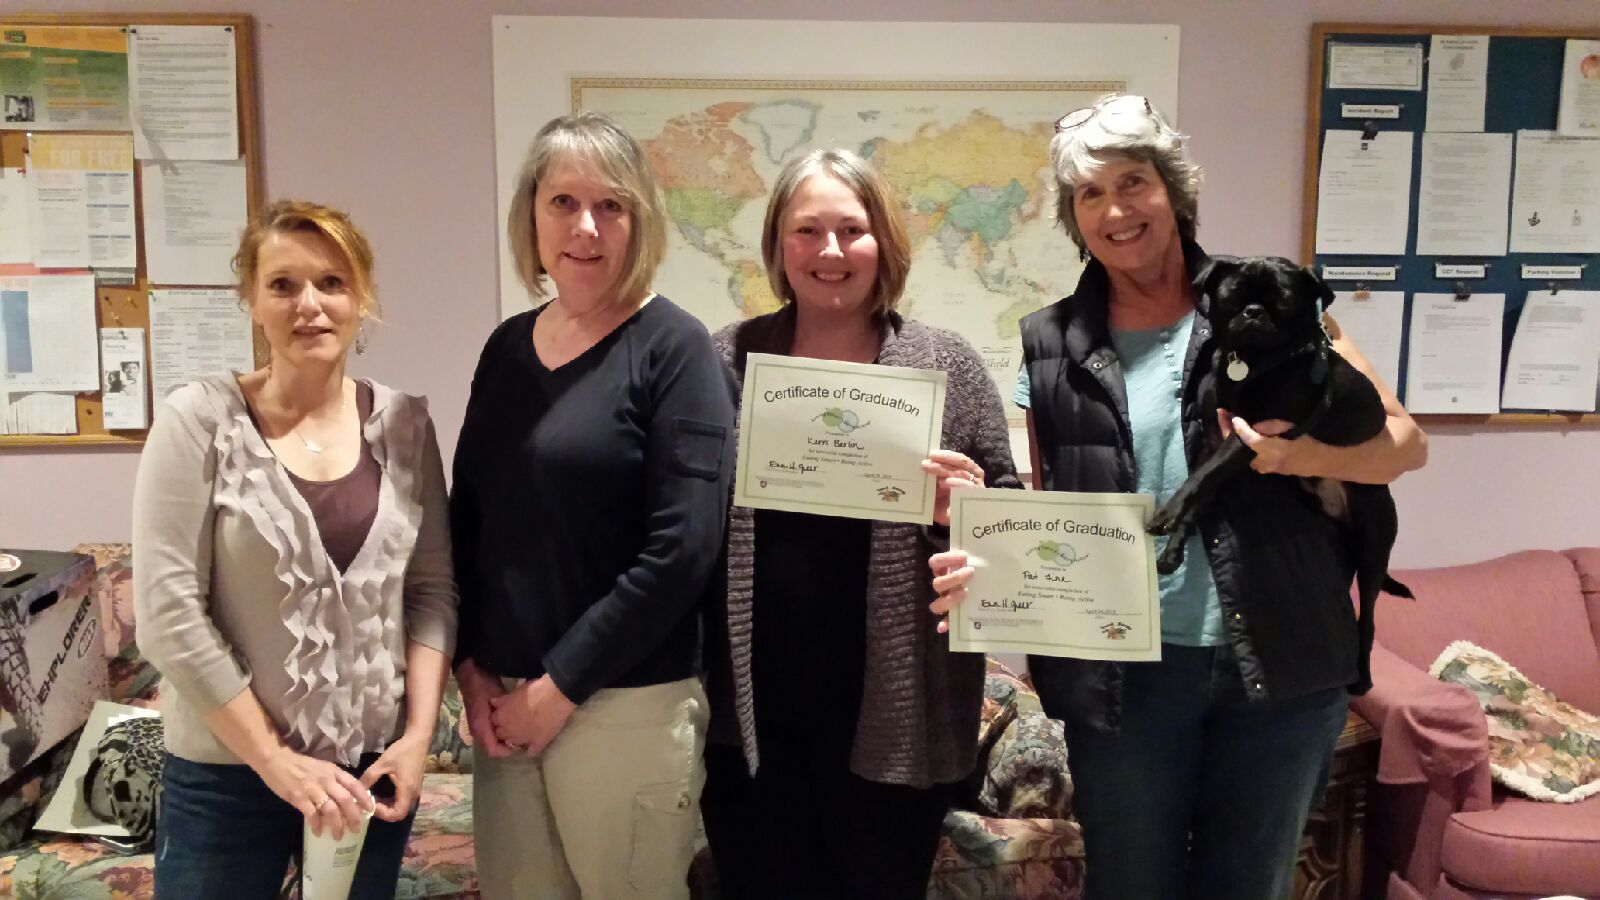 Graduates Monique, Kerri, and Pat show off their certificates with Adult Educator Erin and pup